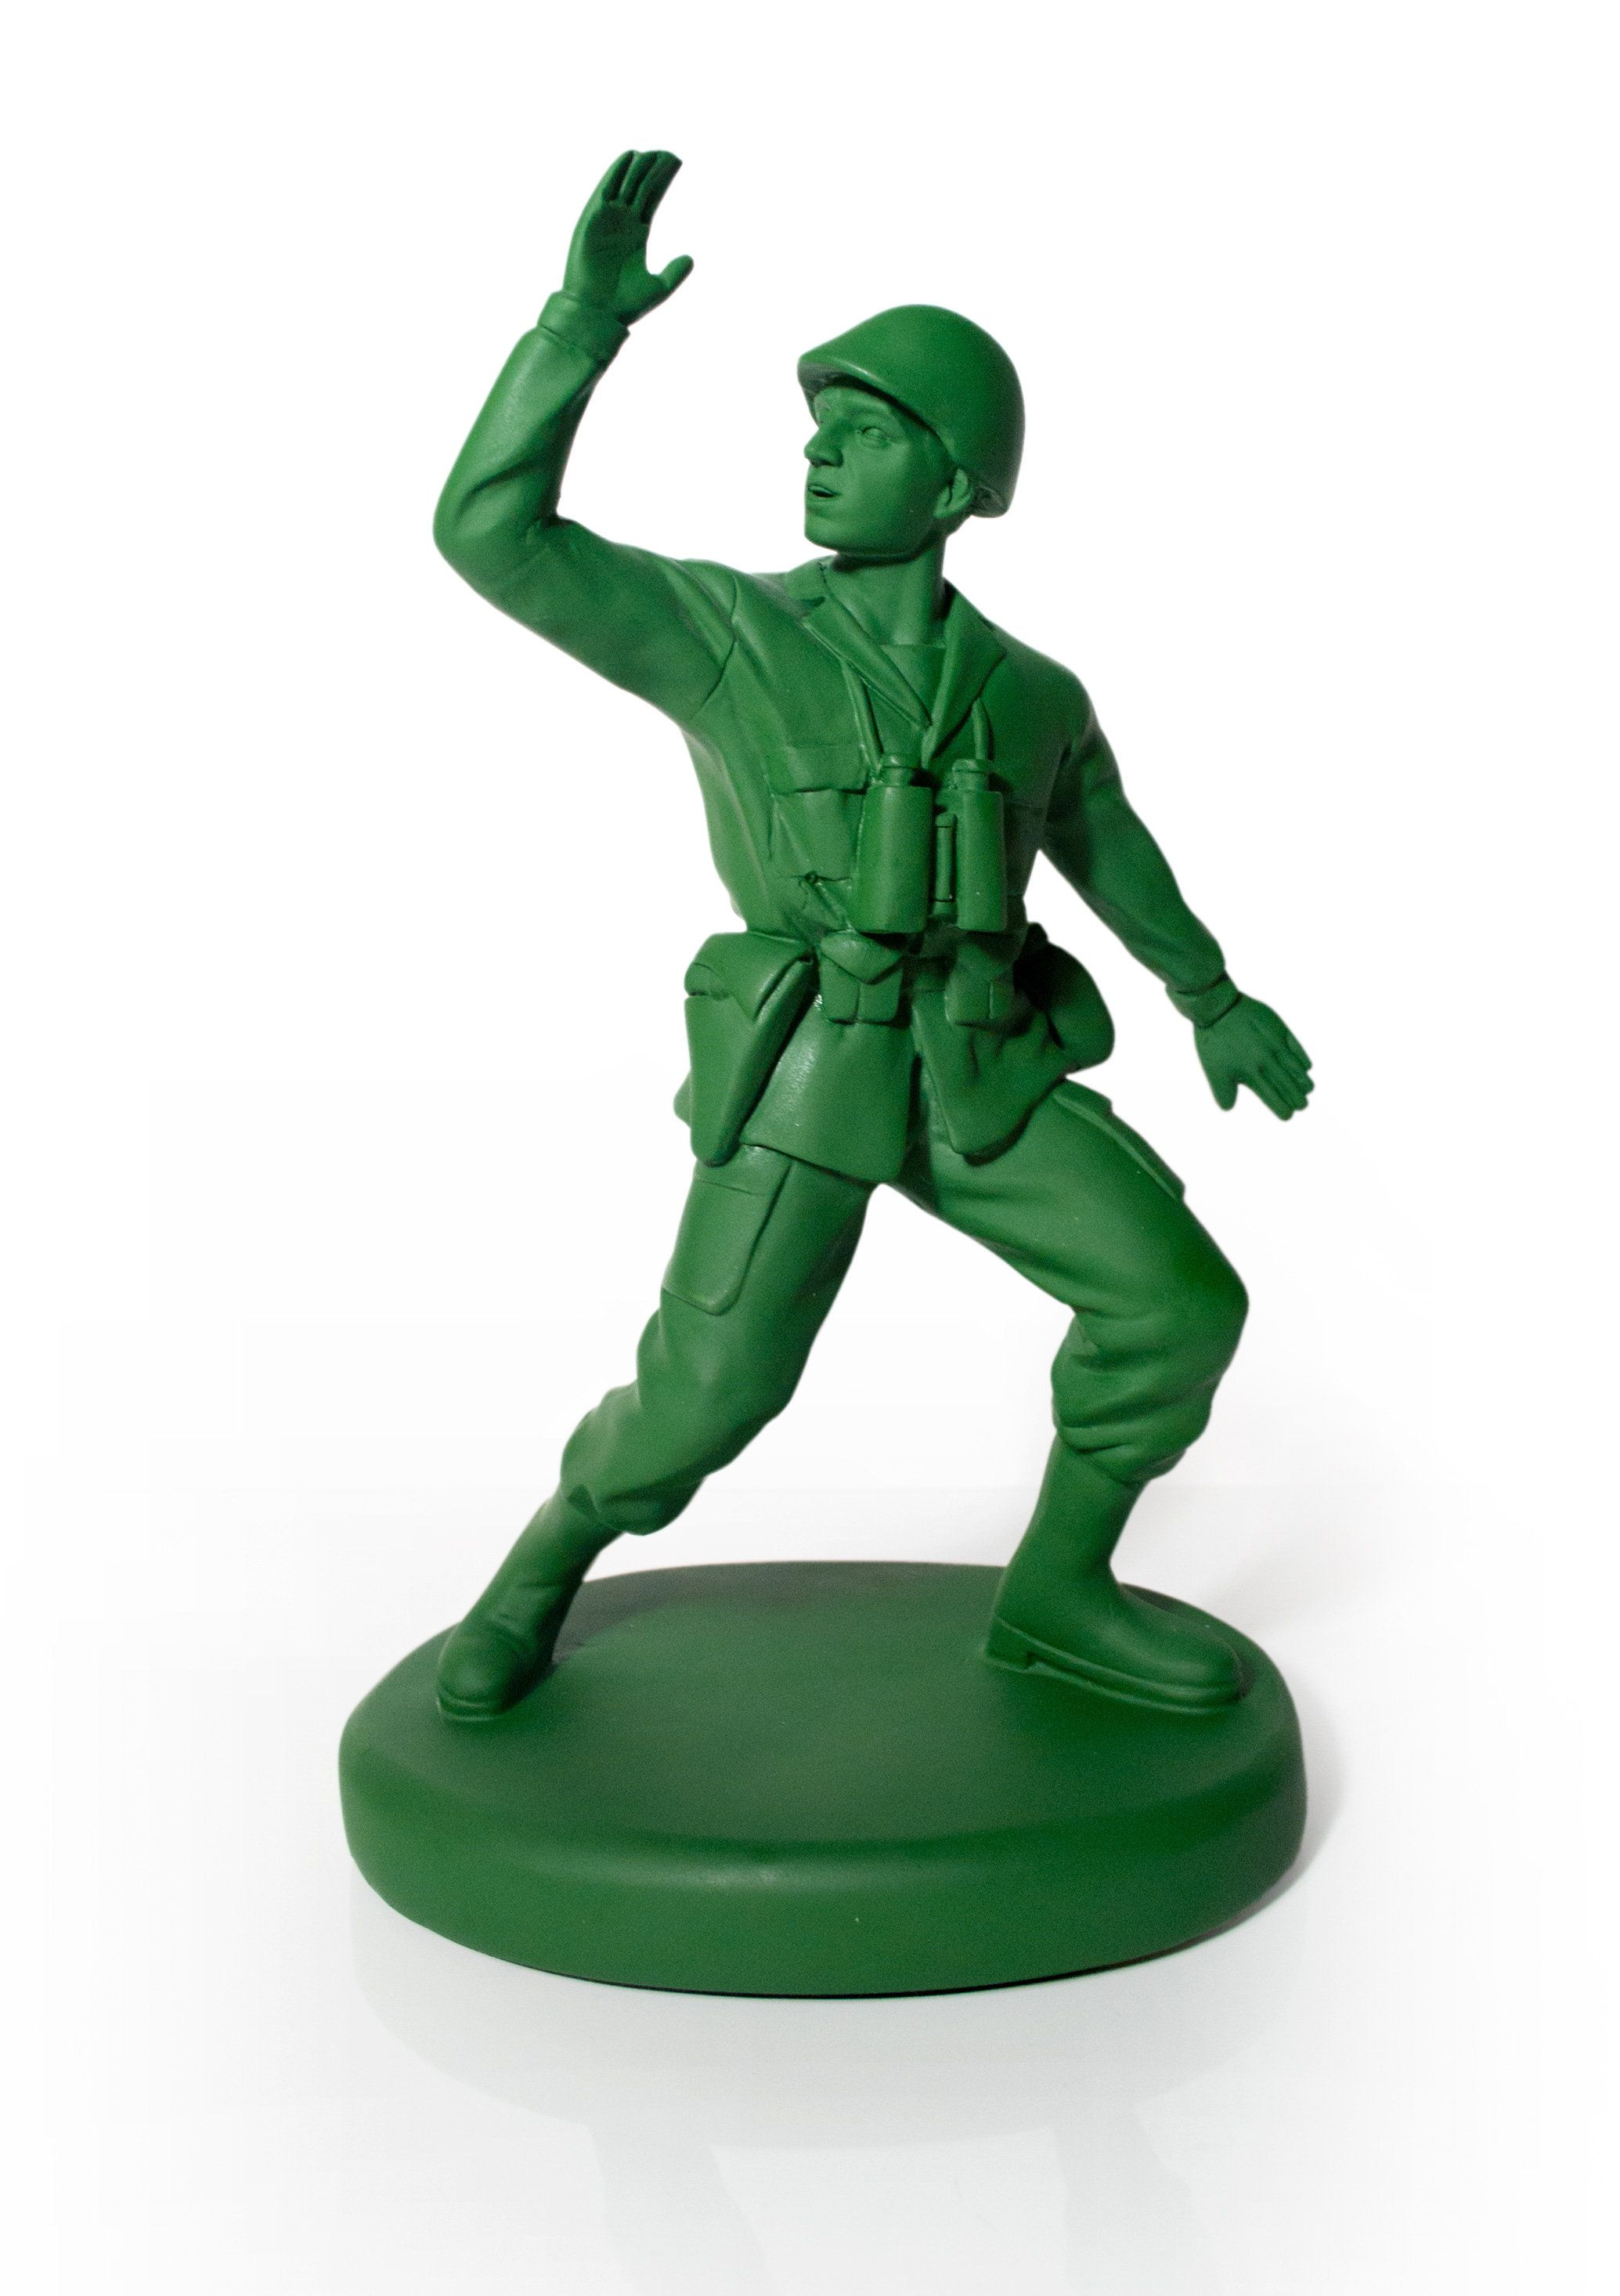 Soldier Toys For Boys : Toy soldier google search soldiers pinterest